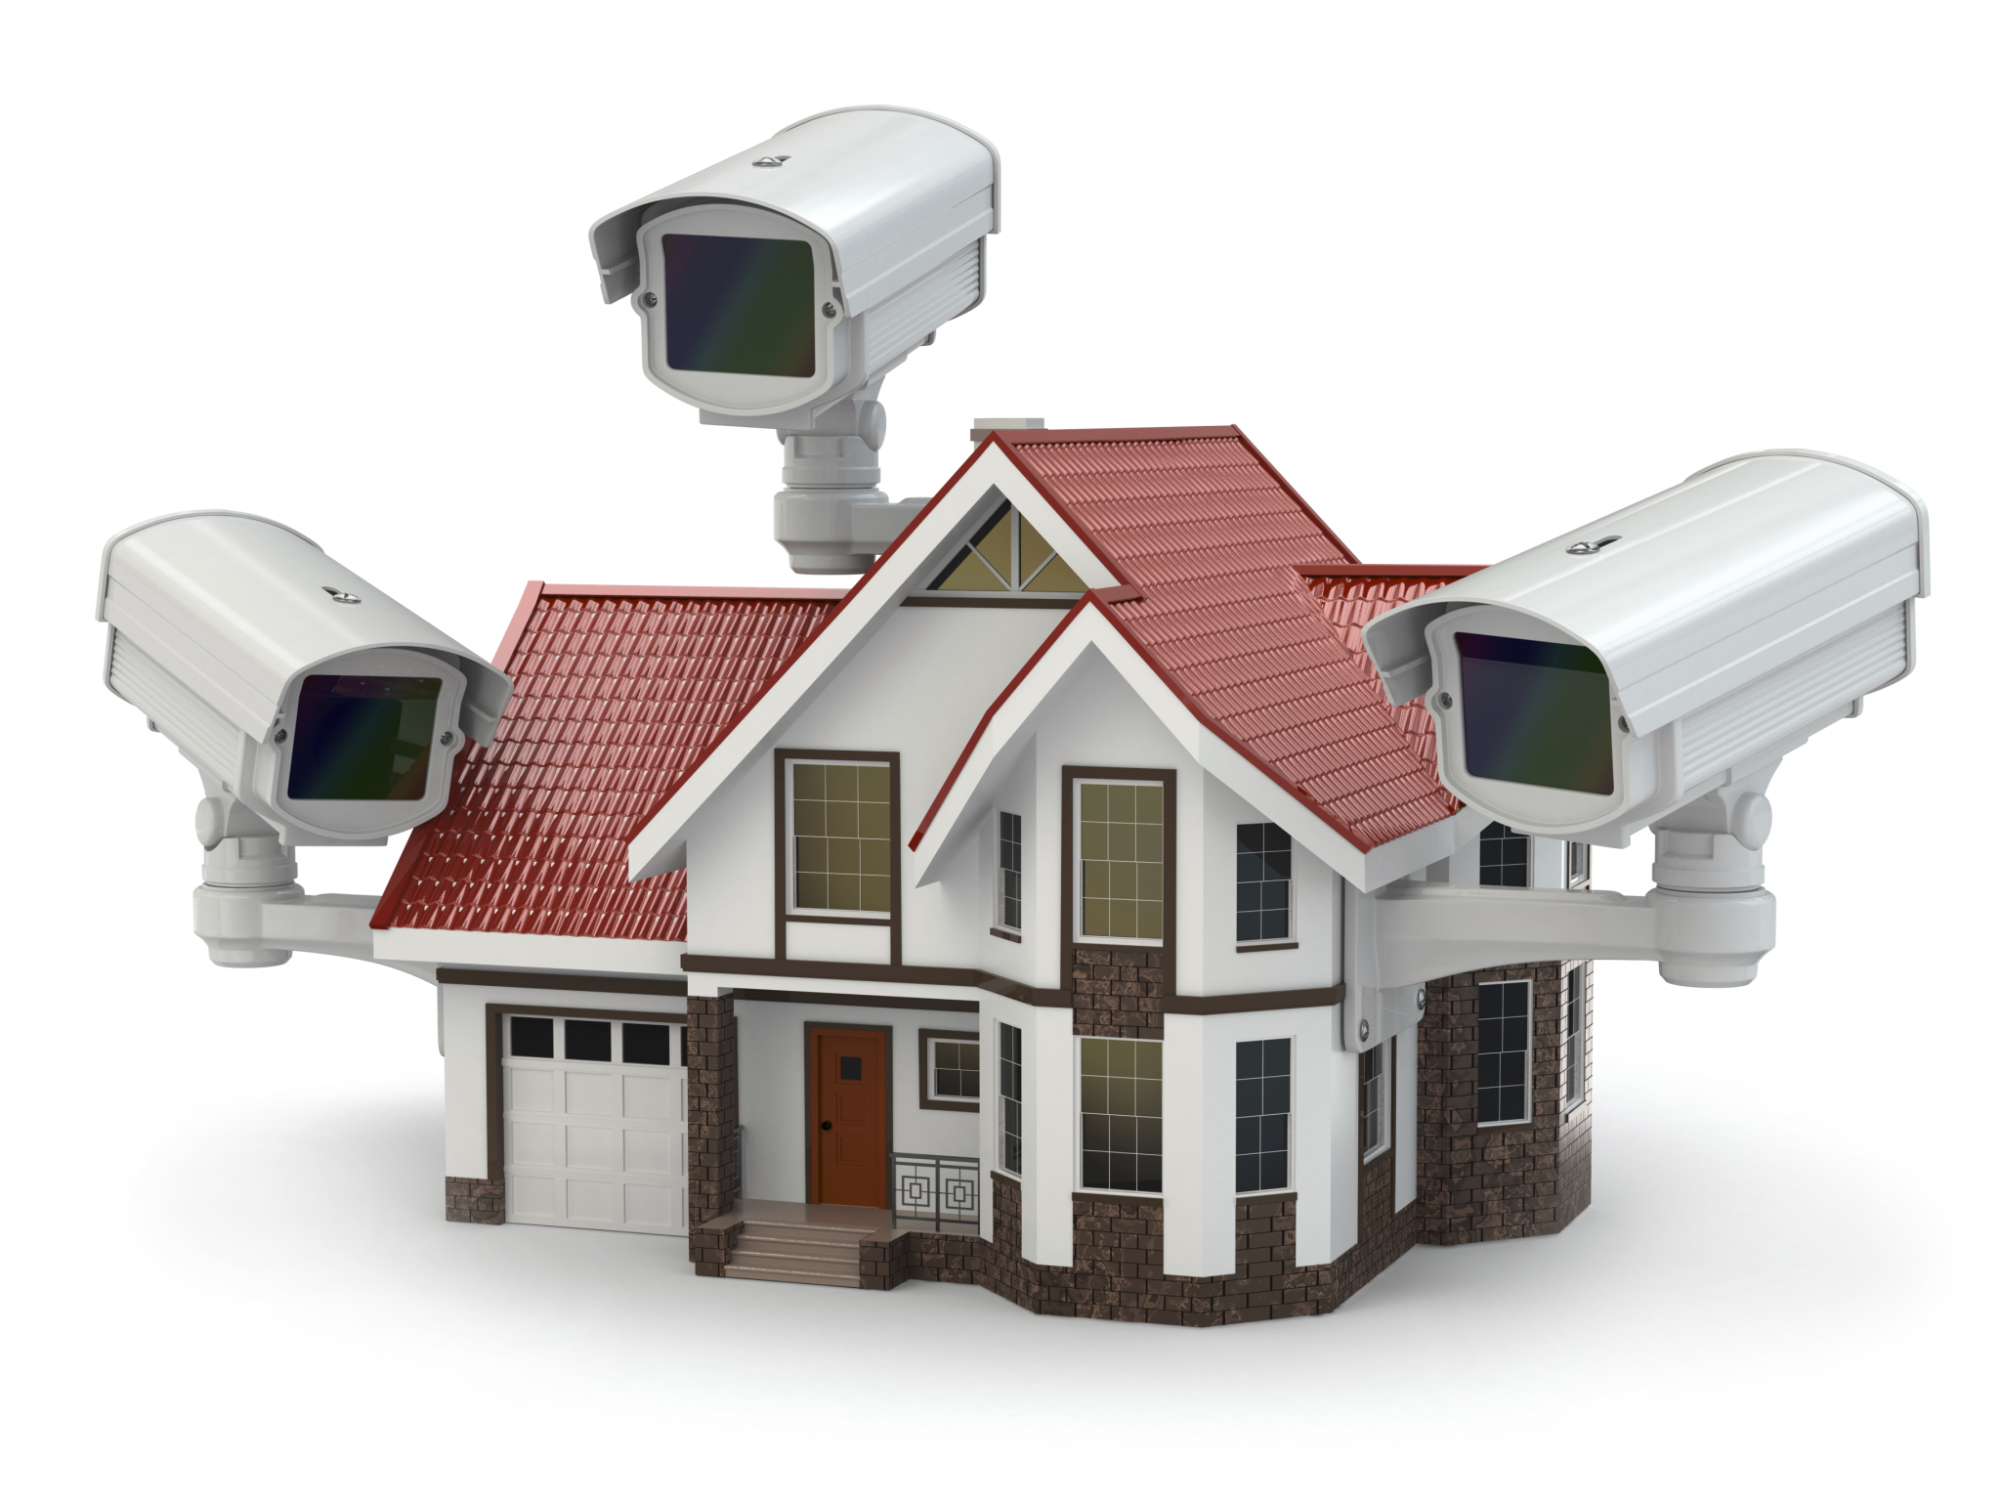 home survellience - Residential Security Cameras